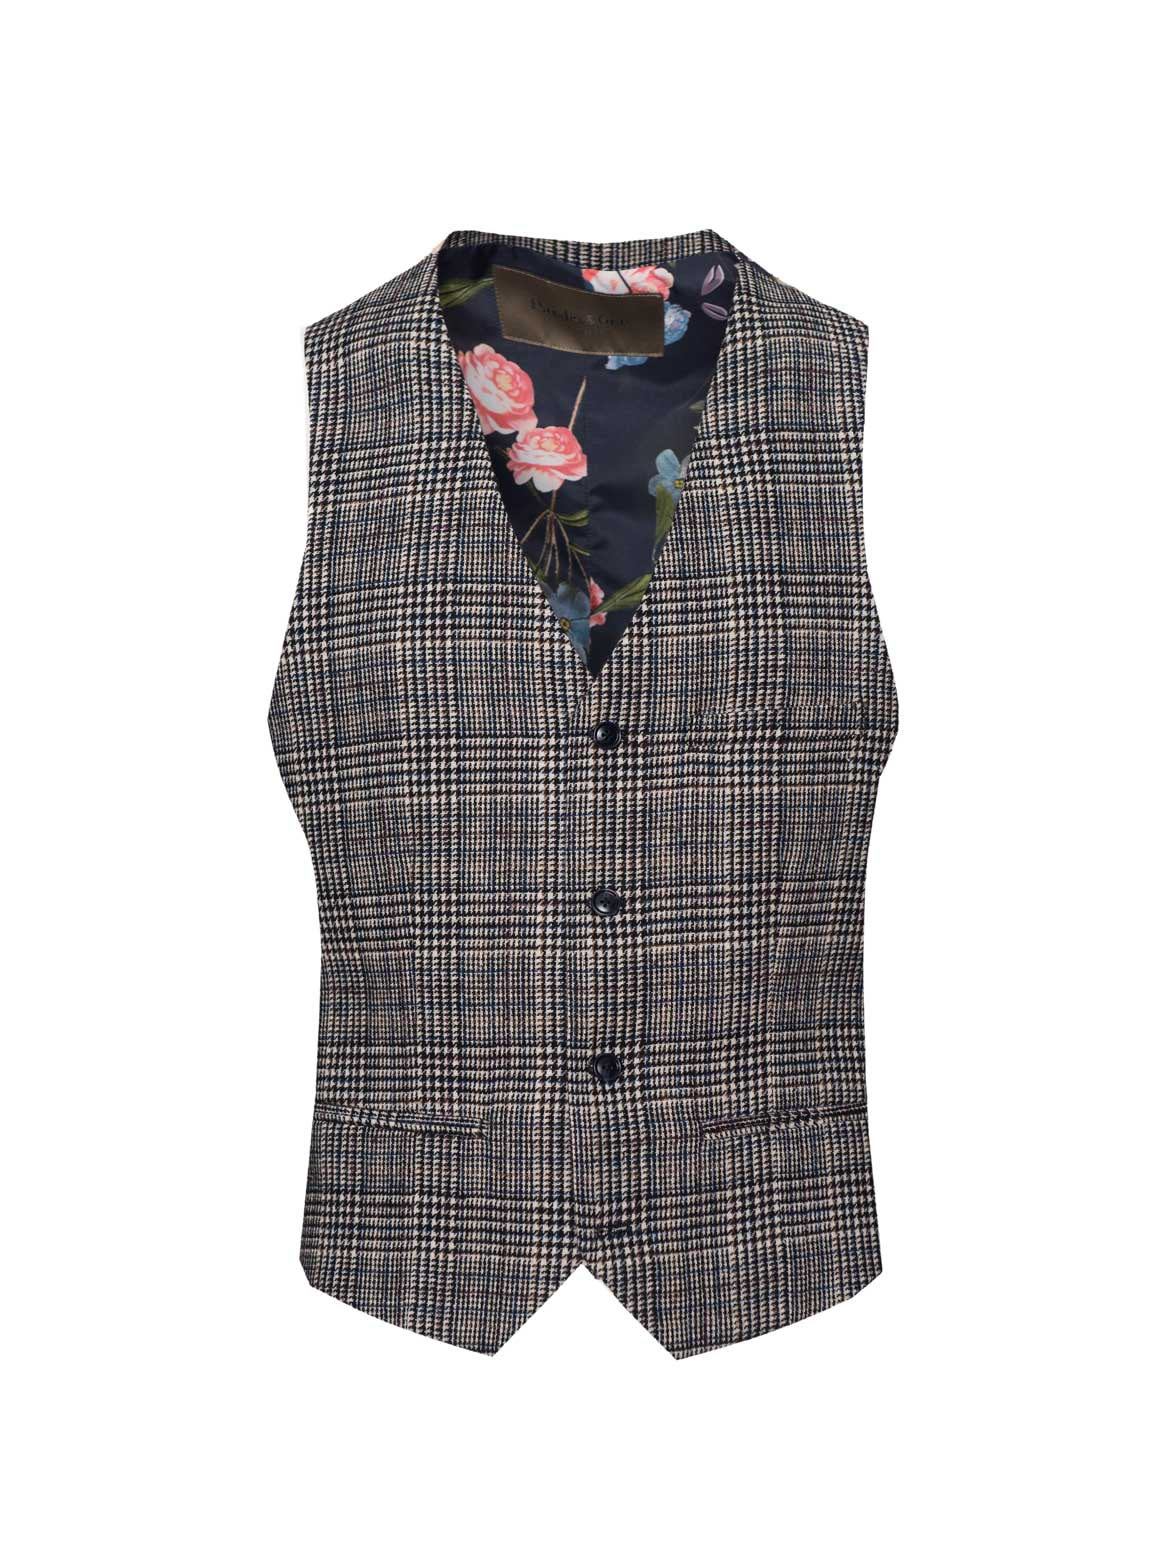 Eaton Vest - Slim - White & Blue Check